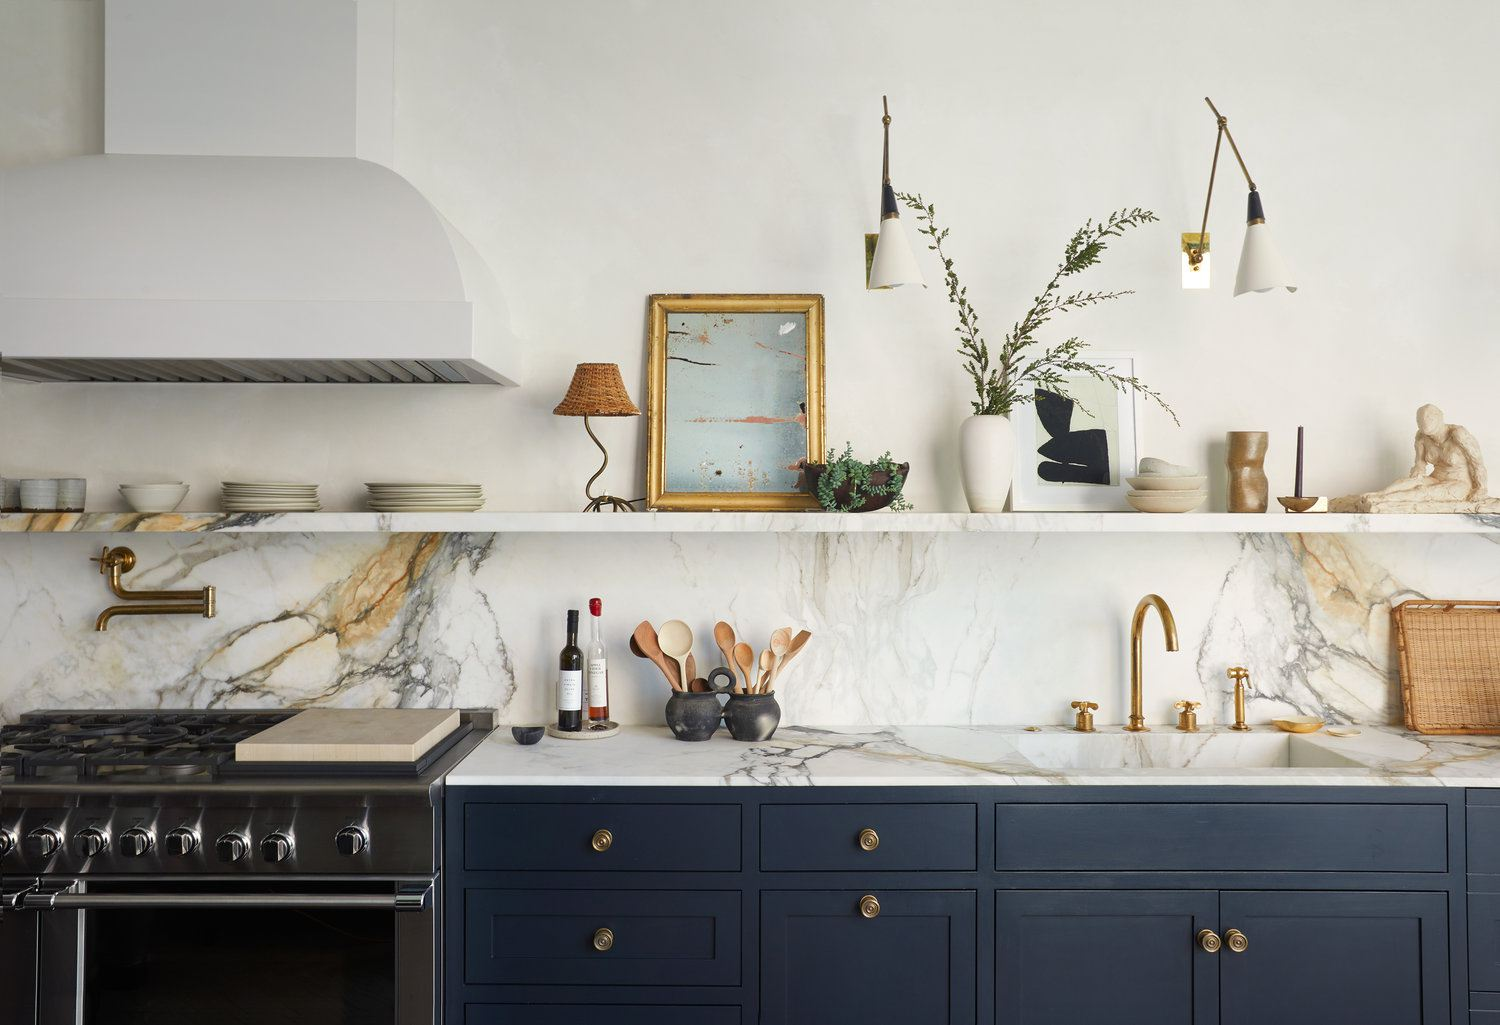 9 Marble Kitchens To Pin For Your Dream Board